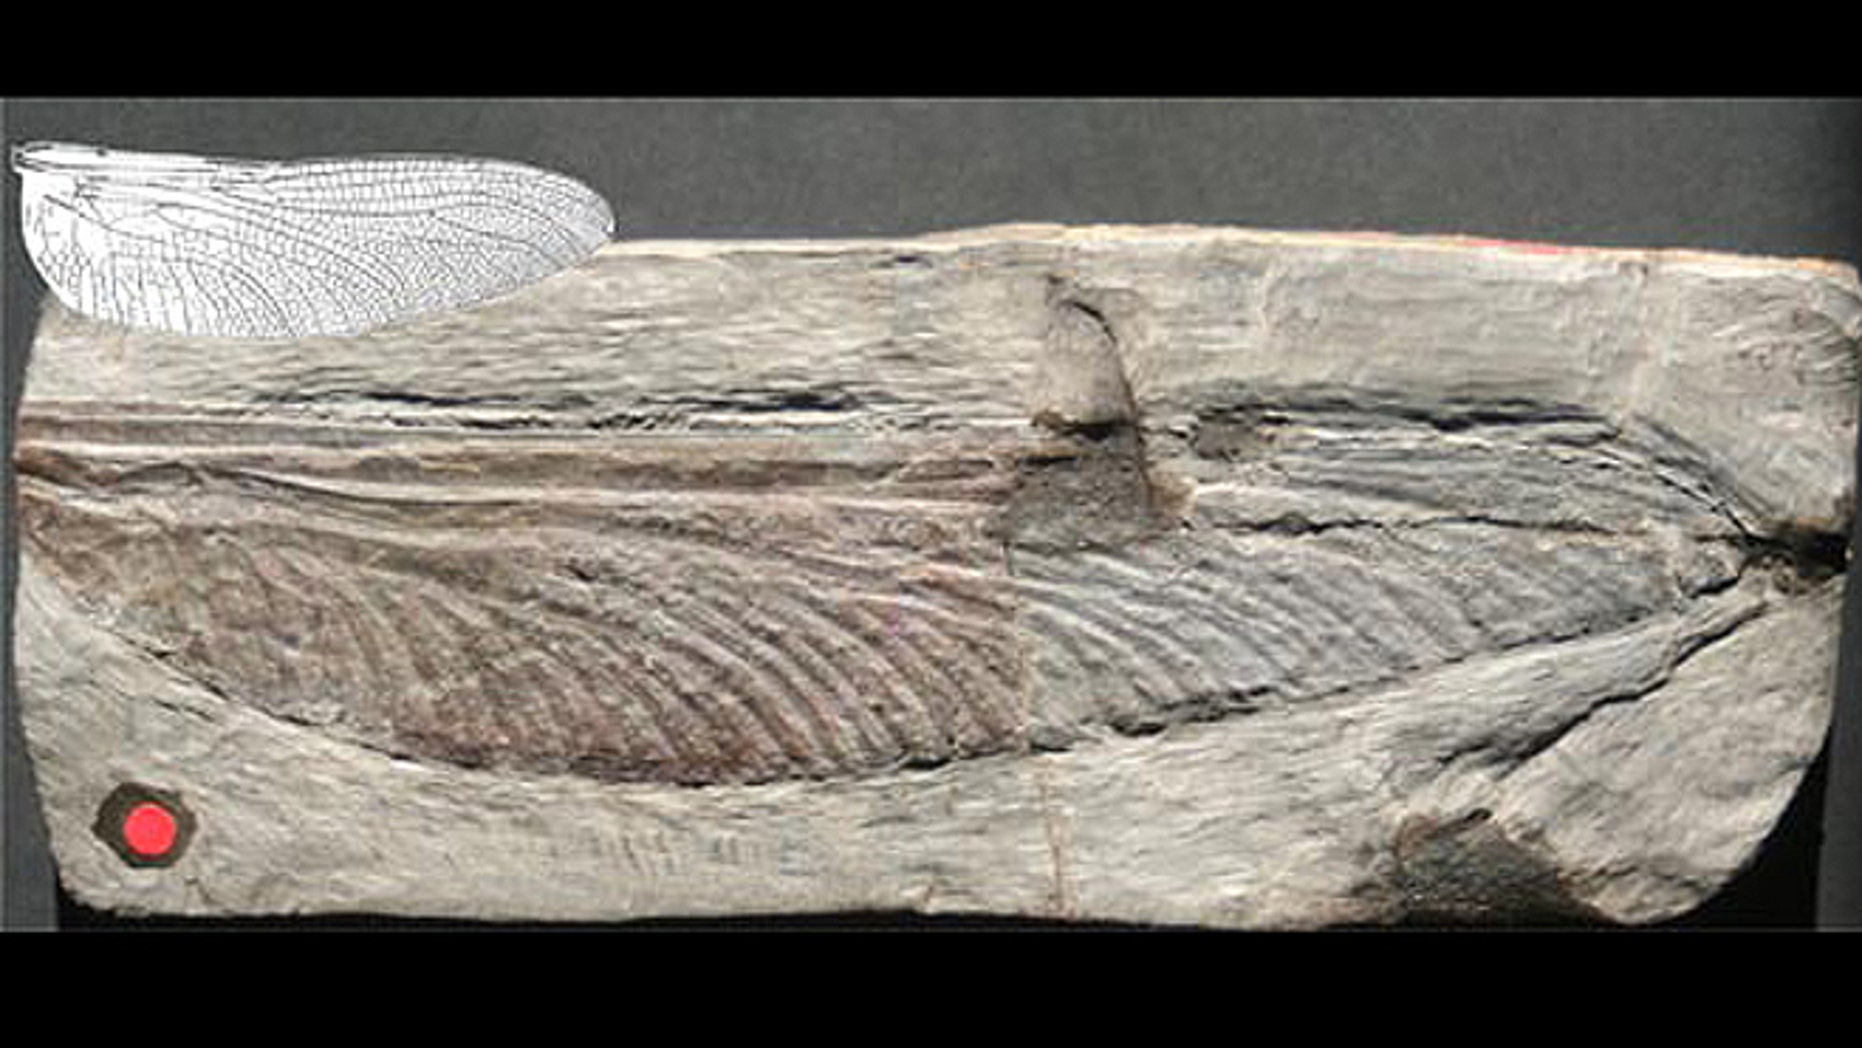 An image of a 7.5-inch-long 300-million year old fossil wing from Stephanotypus schneideri, along with an illustration of the largest relatively recent insect wing for comparison, that of 12-million-year-old 2.6-inch-long Epiaeschna lucida wing.